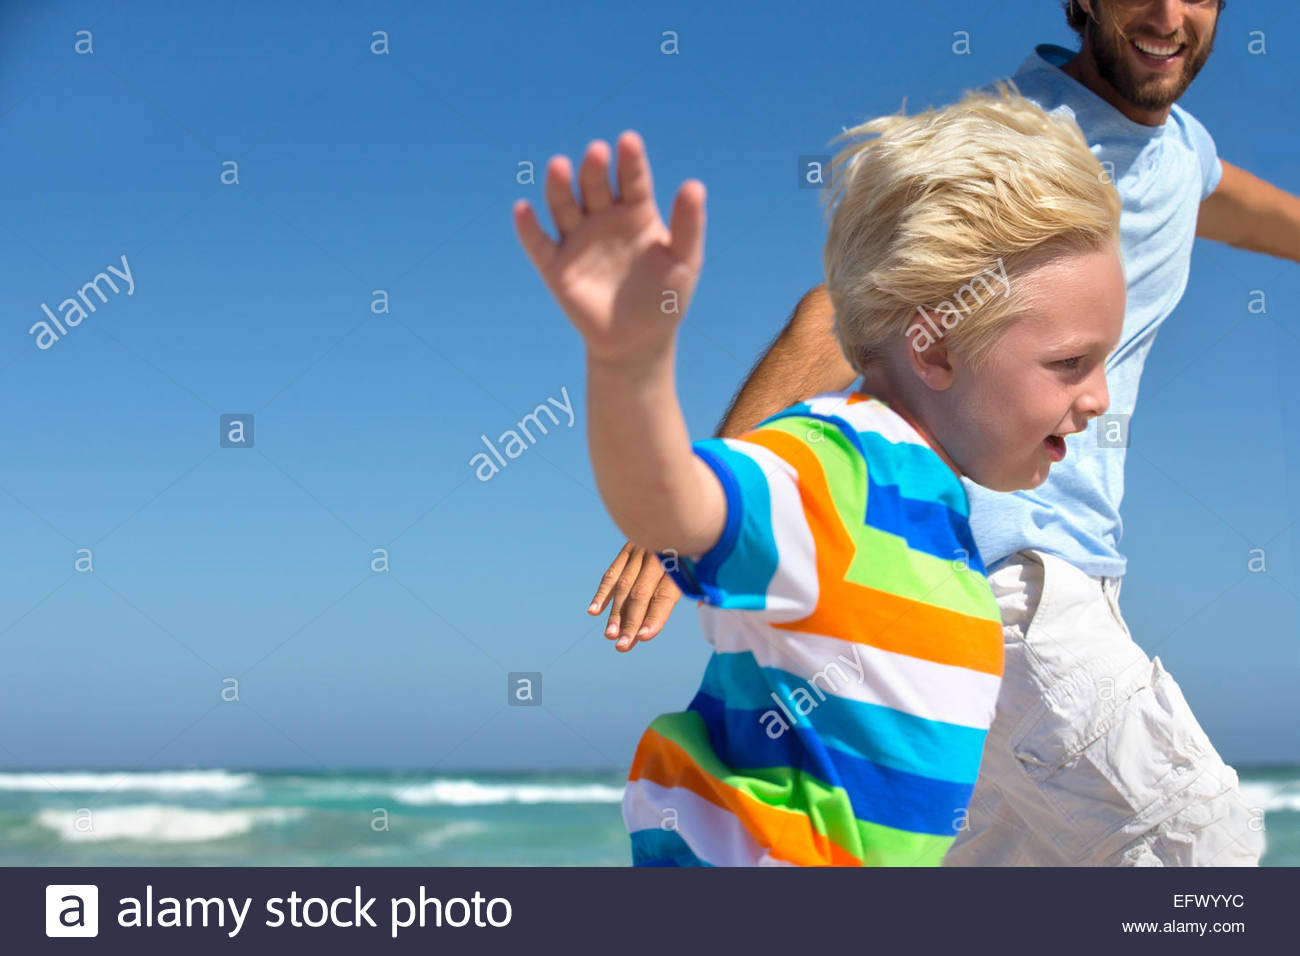 Smiling Father and son, with arms outstretched, running on sunny beach - Stock Image